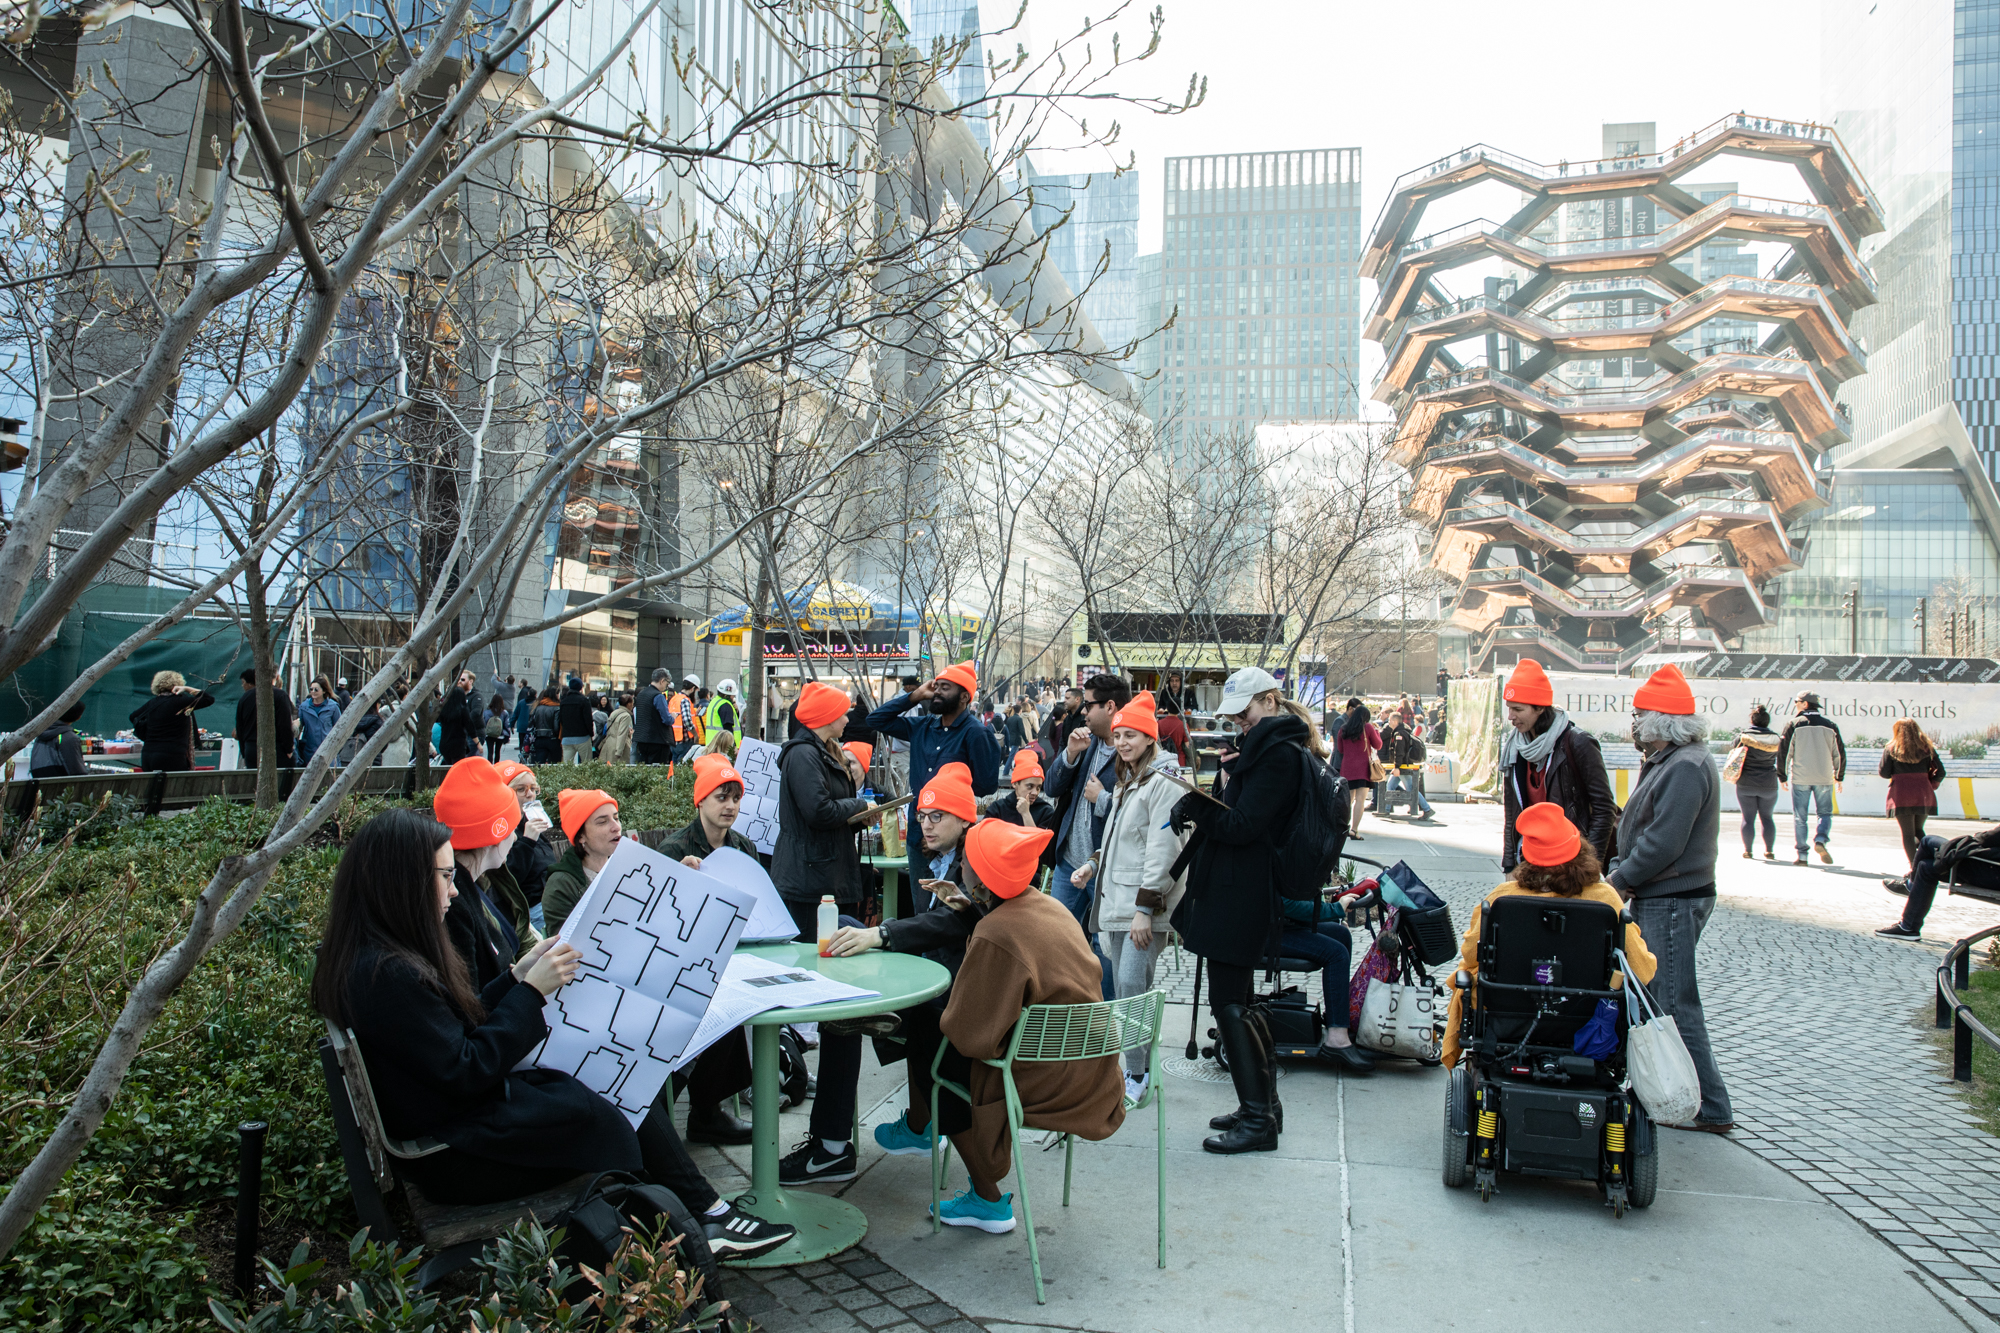 A group of about twenty people lounging in front of the Vessel. They are sitting, chatting, and reading. All wear neon orange Anti-Stairs Club Lounge beanies.